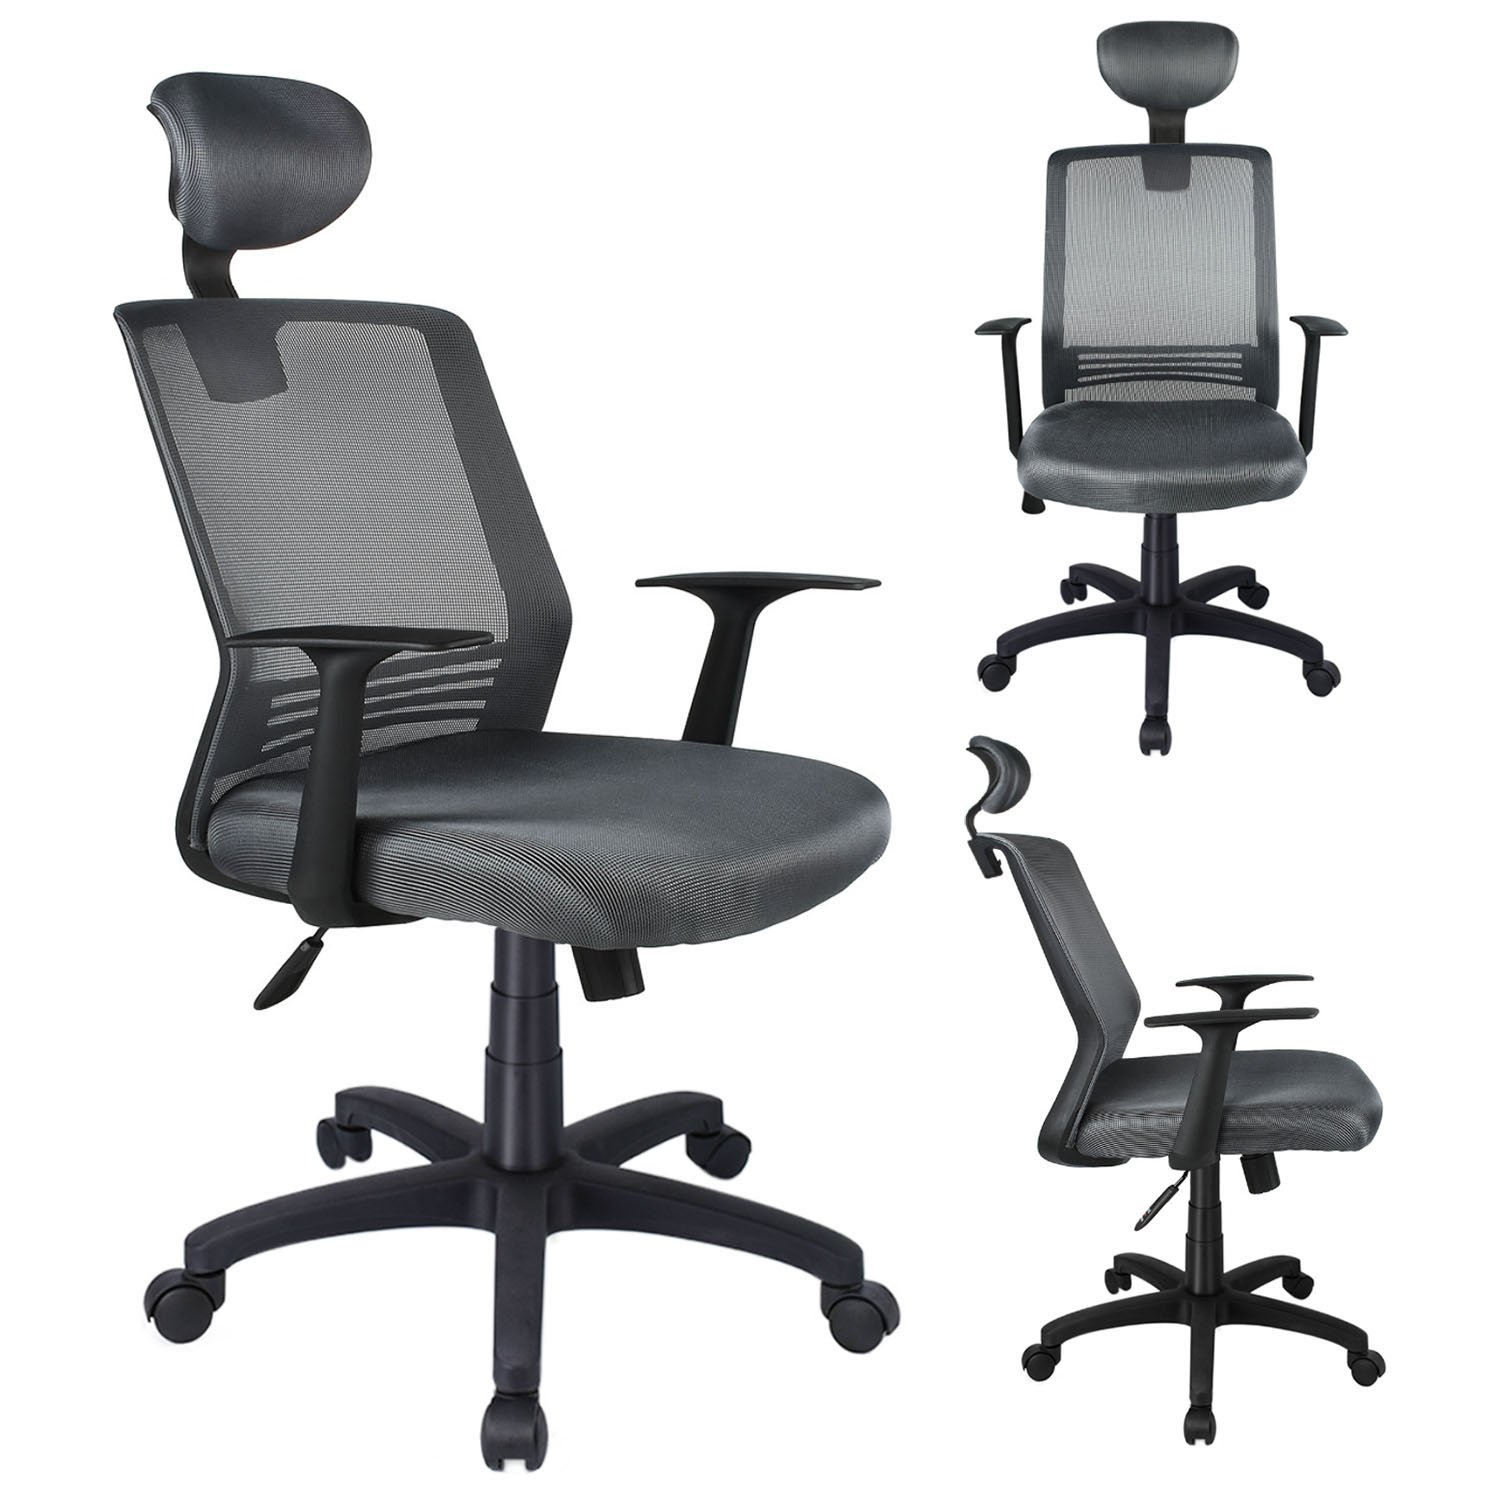 Ezcheer Mid Back Office Chair Mesh Desk Chair with Adjustable Lumbar Support and Headrest